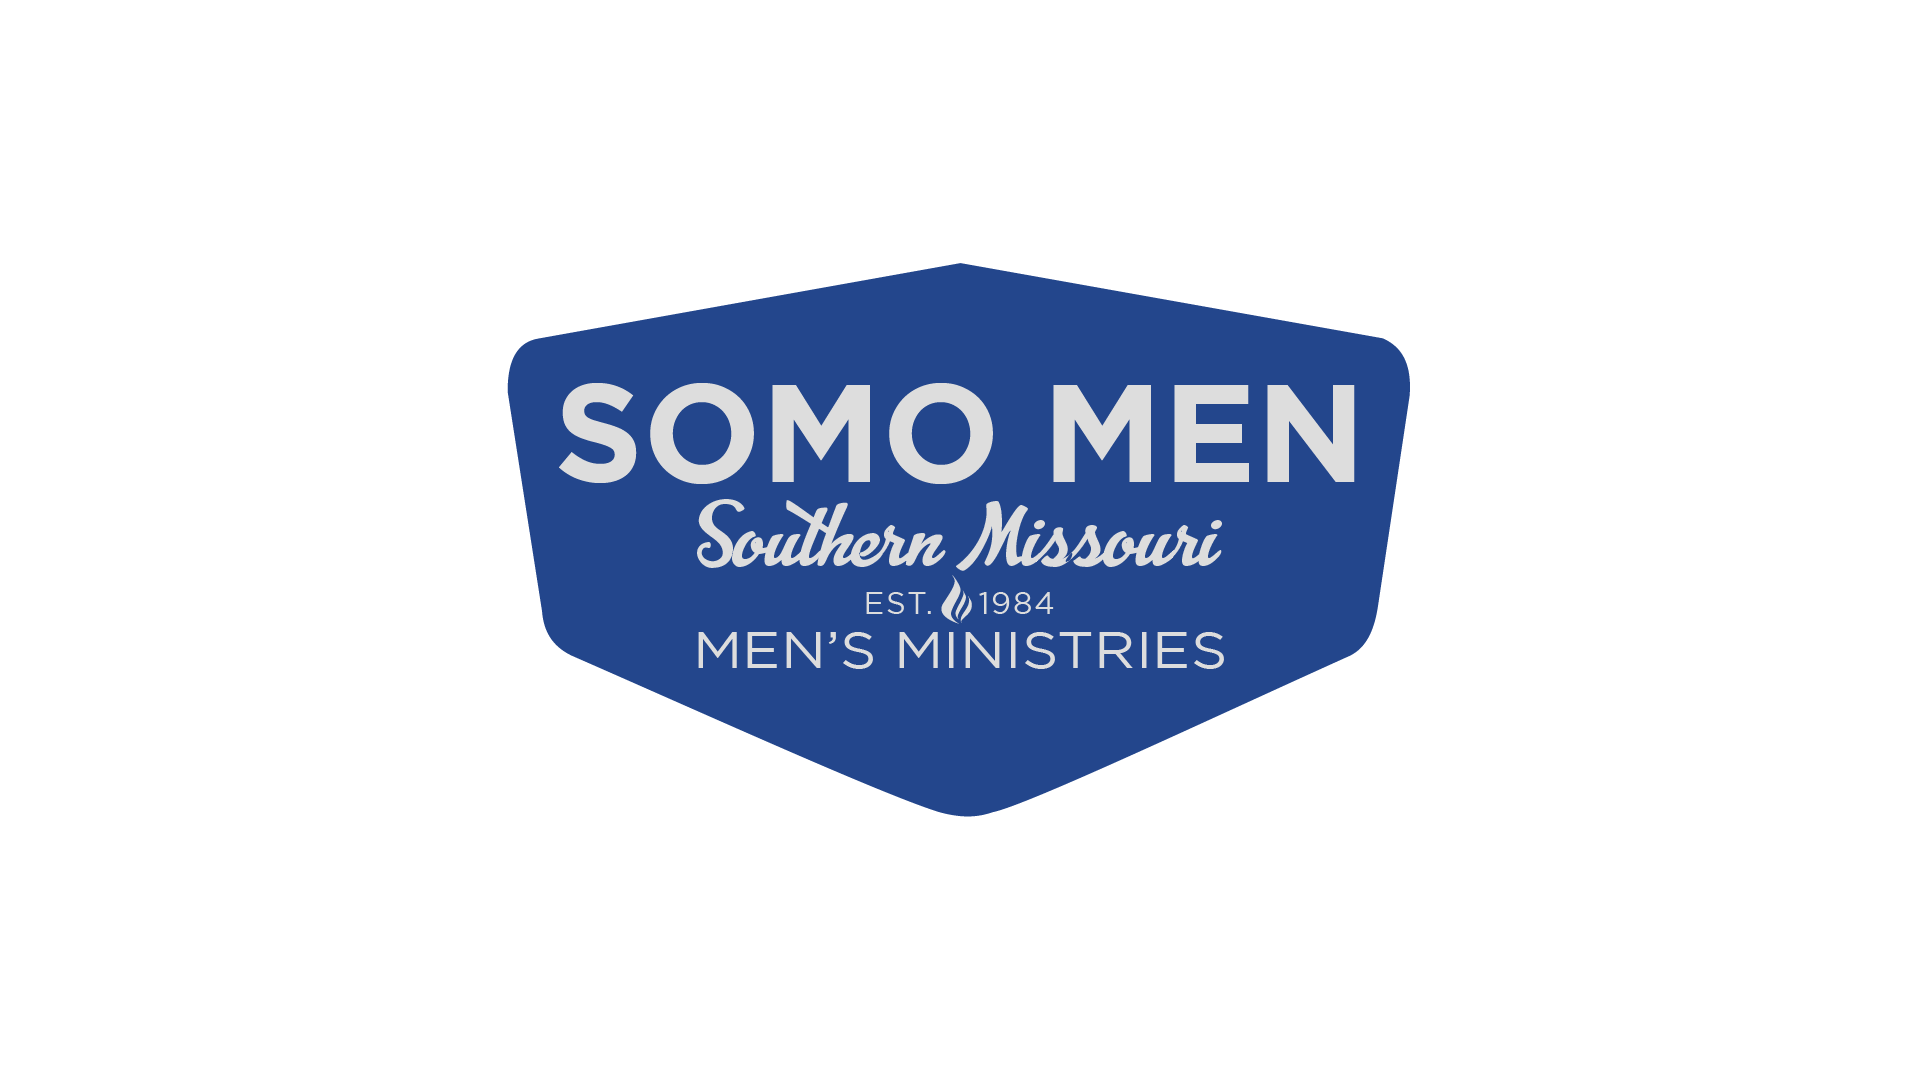 SOMO Men's Ministries